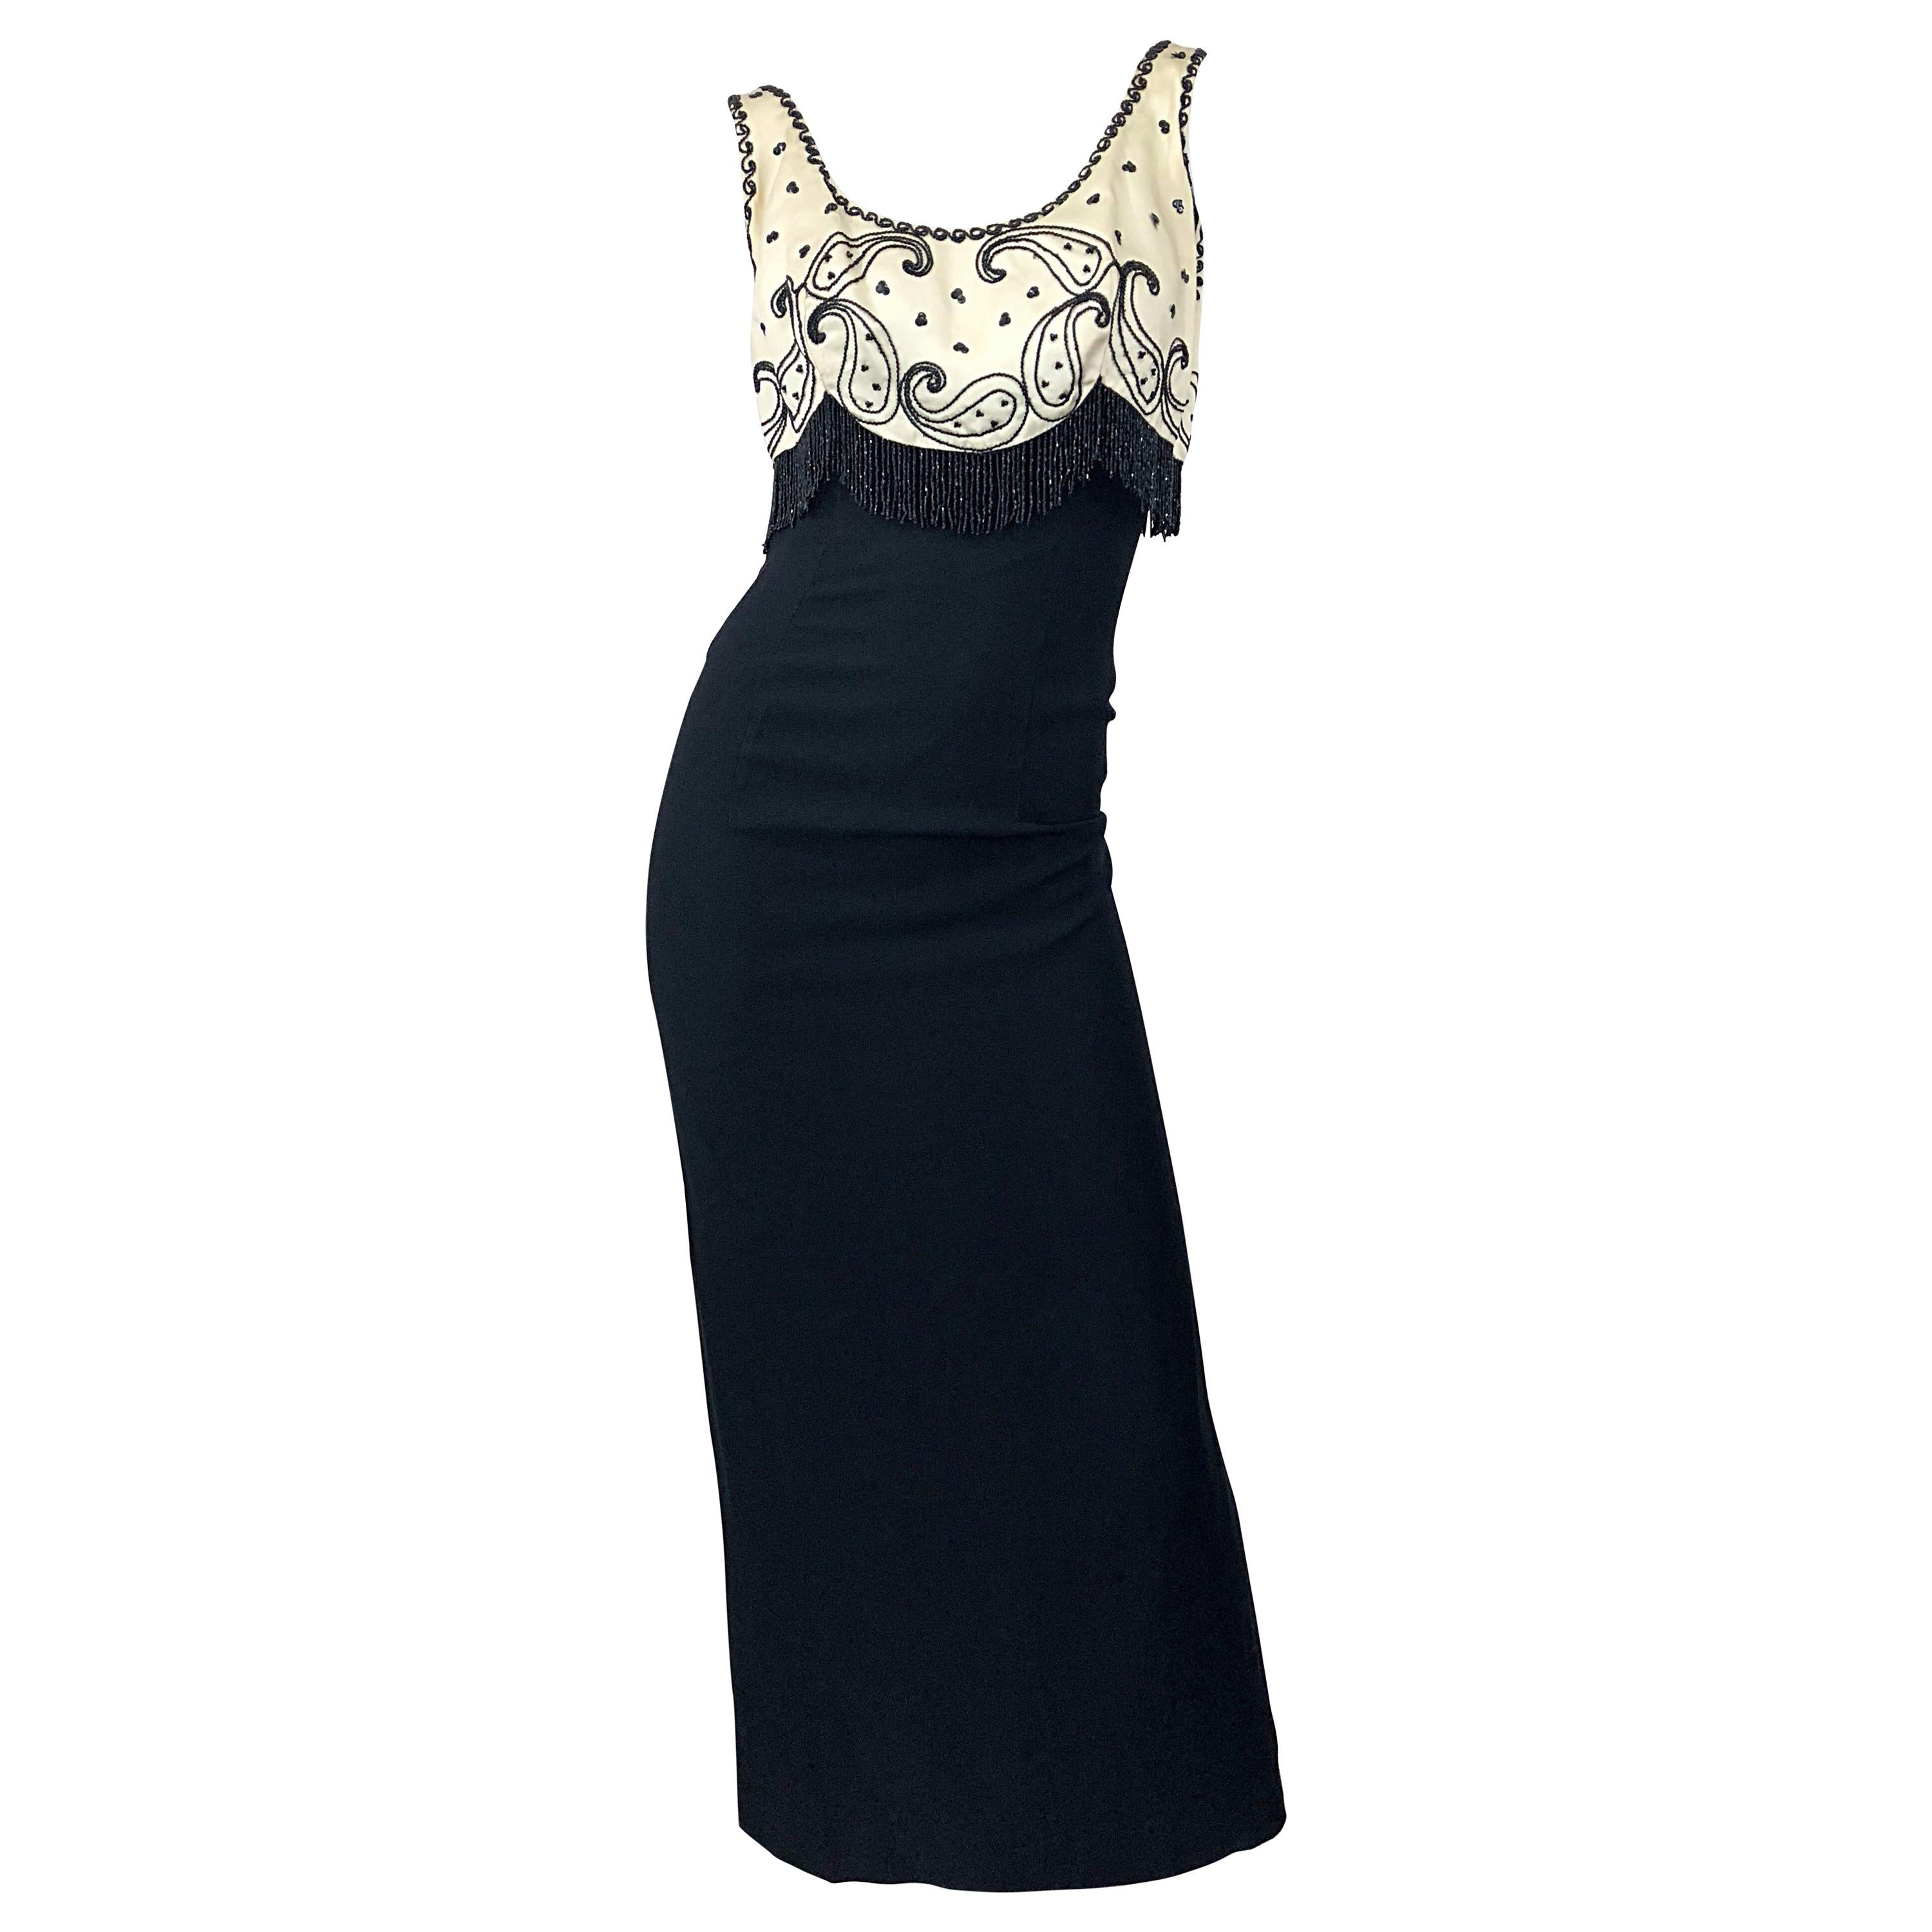 1950s Lilli Diamond Black and White / Ivory Beaded Vintage 50s Evening Gown